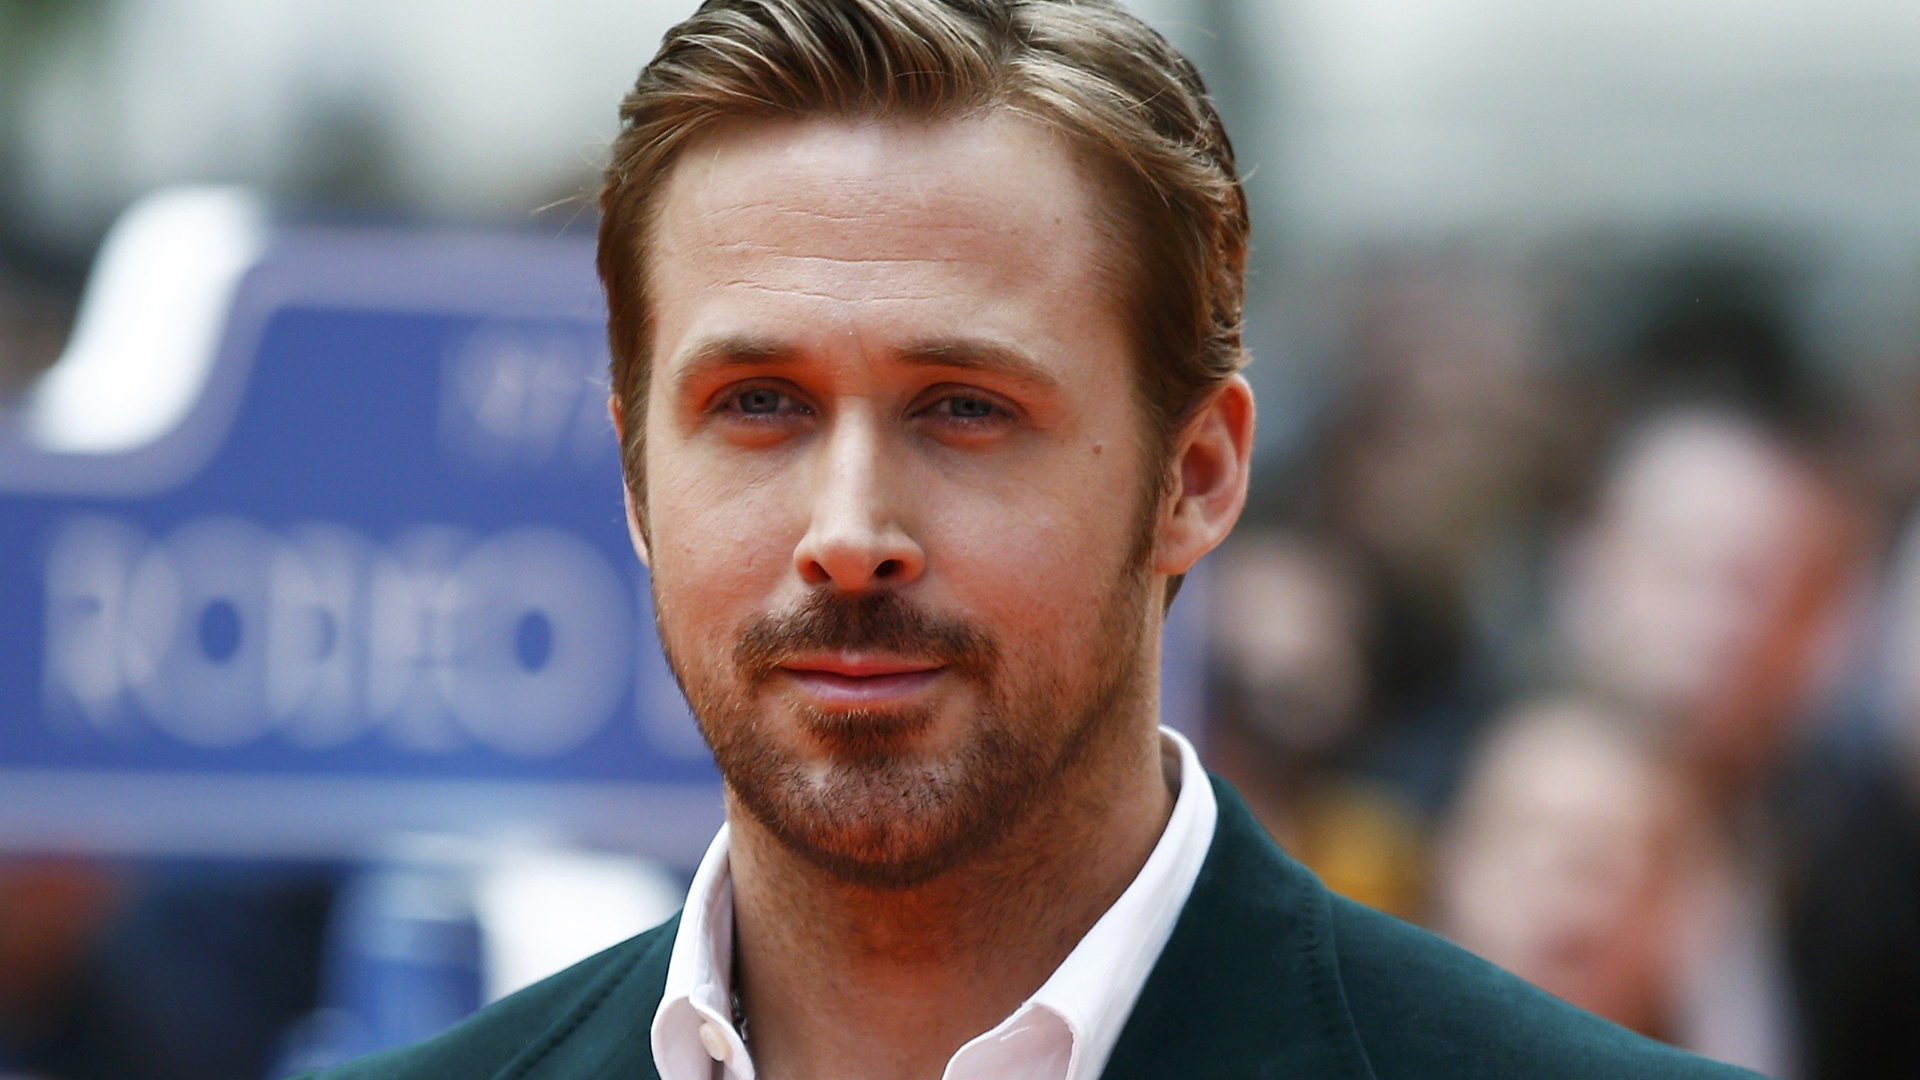 Ryan Gosling Achieves Perfection Declares Women